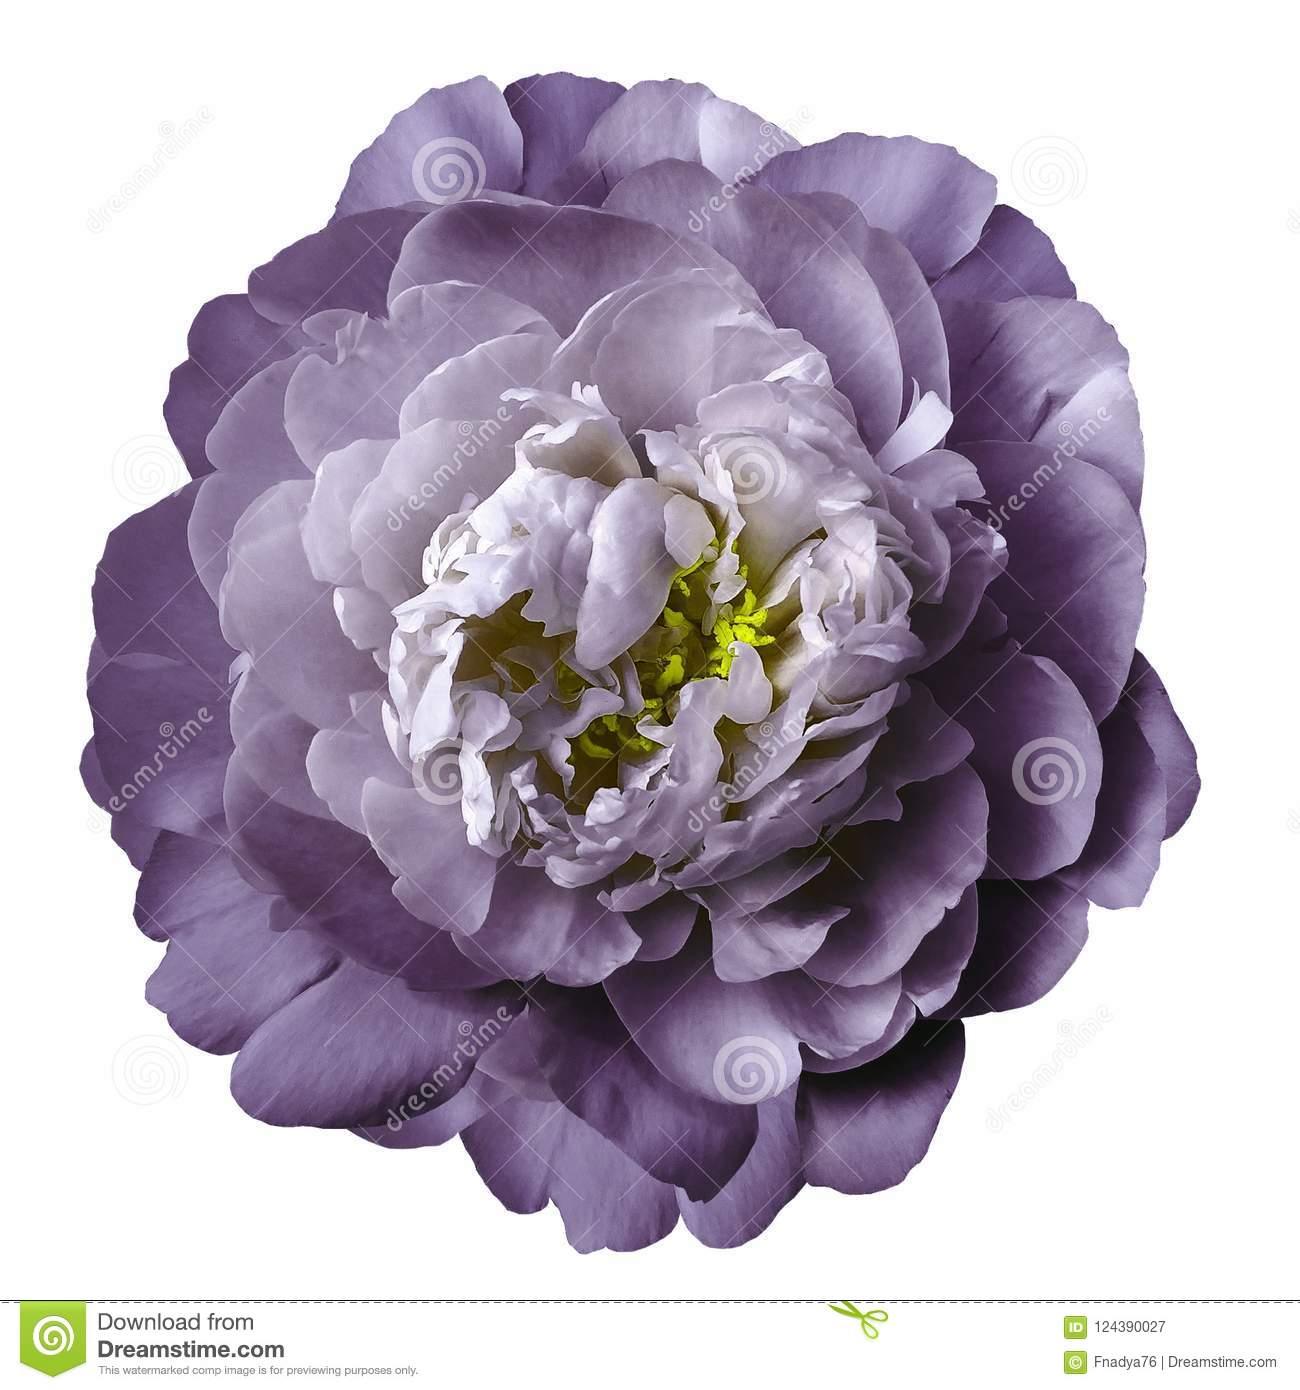 Violet White Peony Flower With Yellow Stamens On An Isolated White